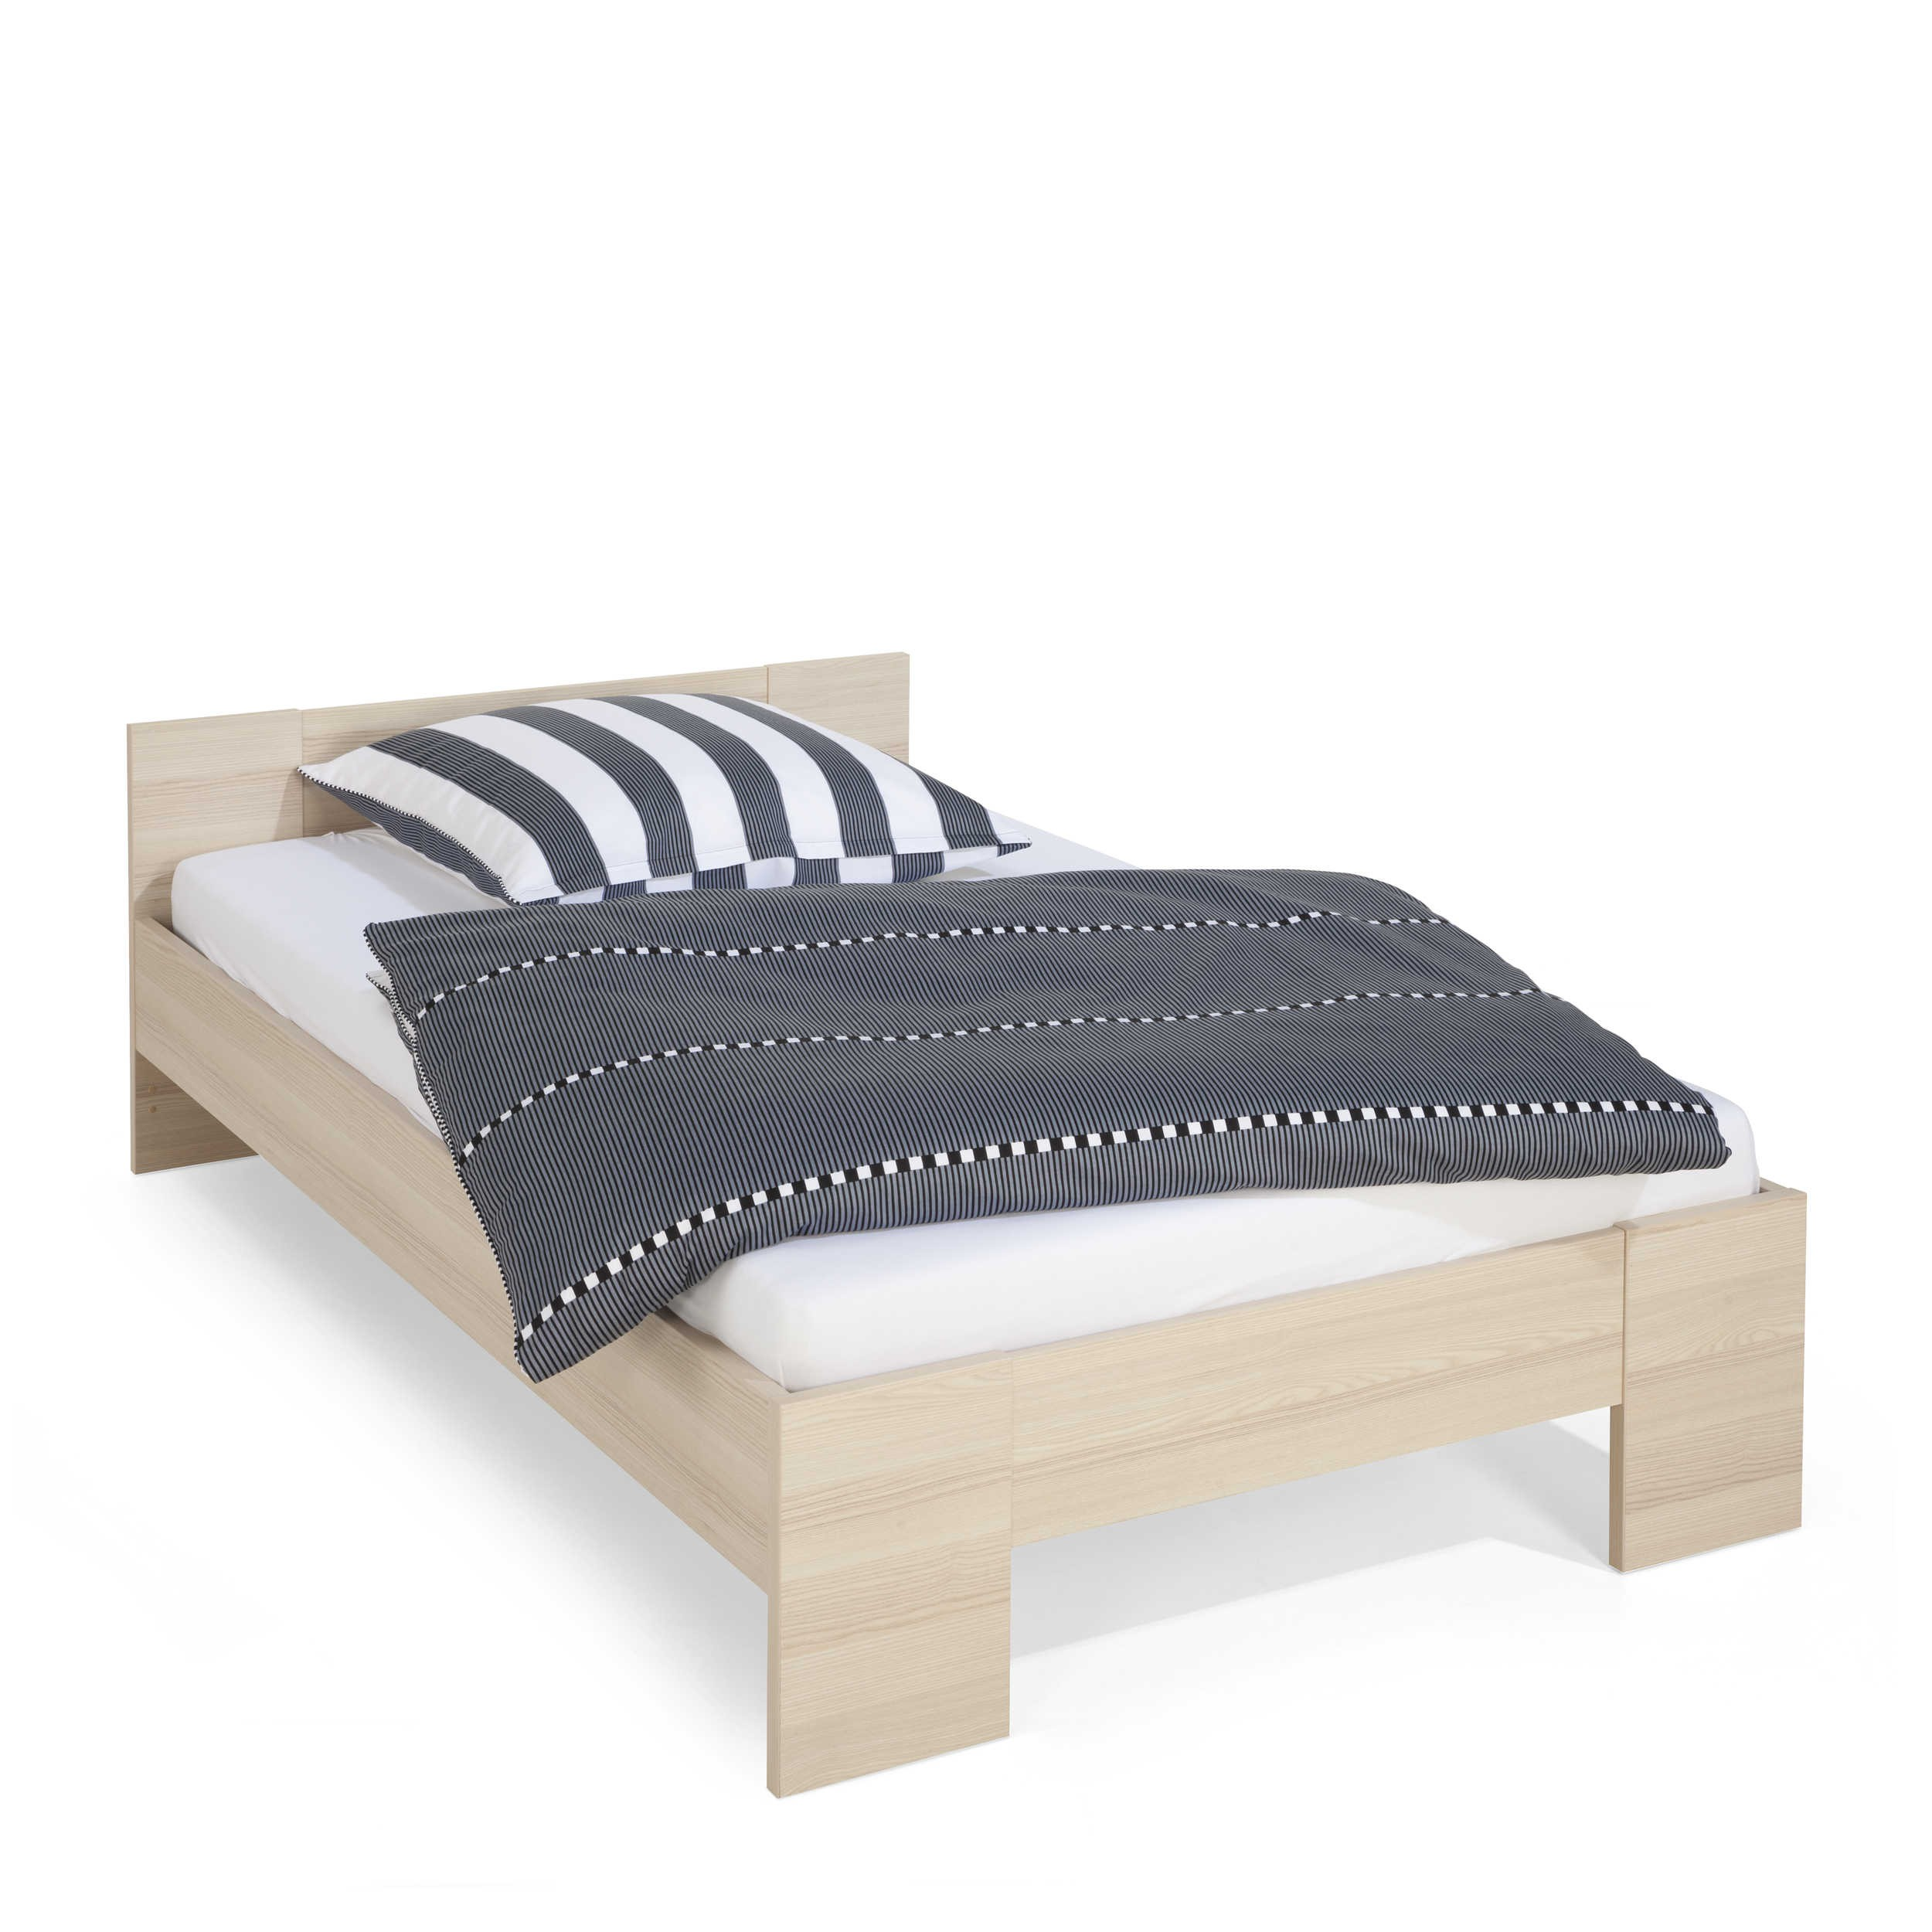 composad bett calisma 120 x 200 cm esche holzoptik online kaufen bei woonio. Black Bedroom Furniture Sets. Home Design Ideas